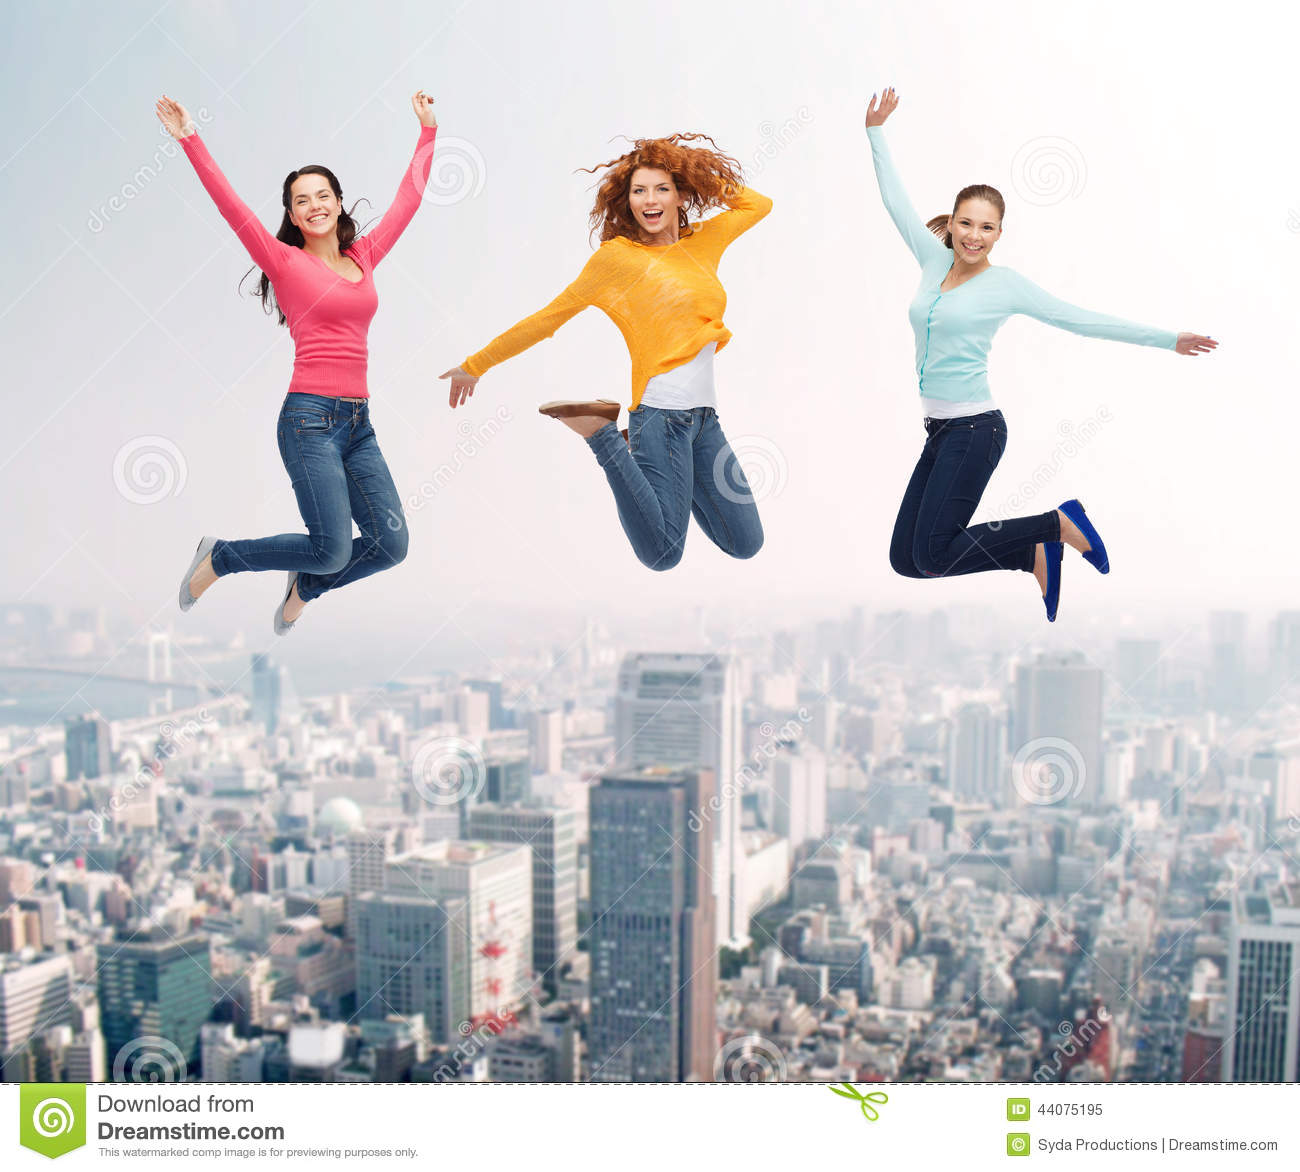 Group Smiling Women Jumping Air Happiness Freedom Friendship Movement People Concept Young Woman Man Over City Vector Images